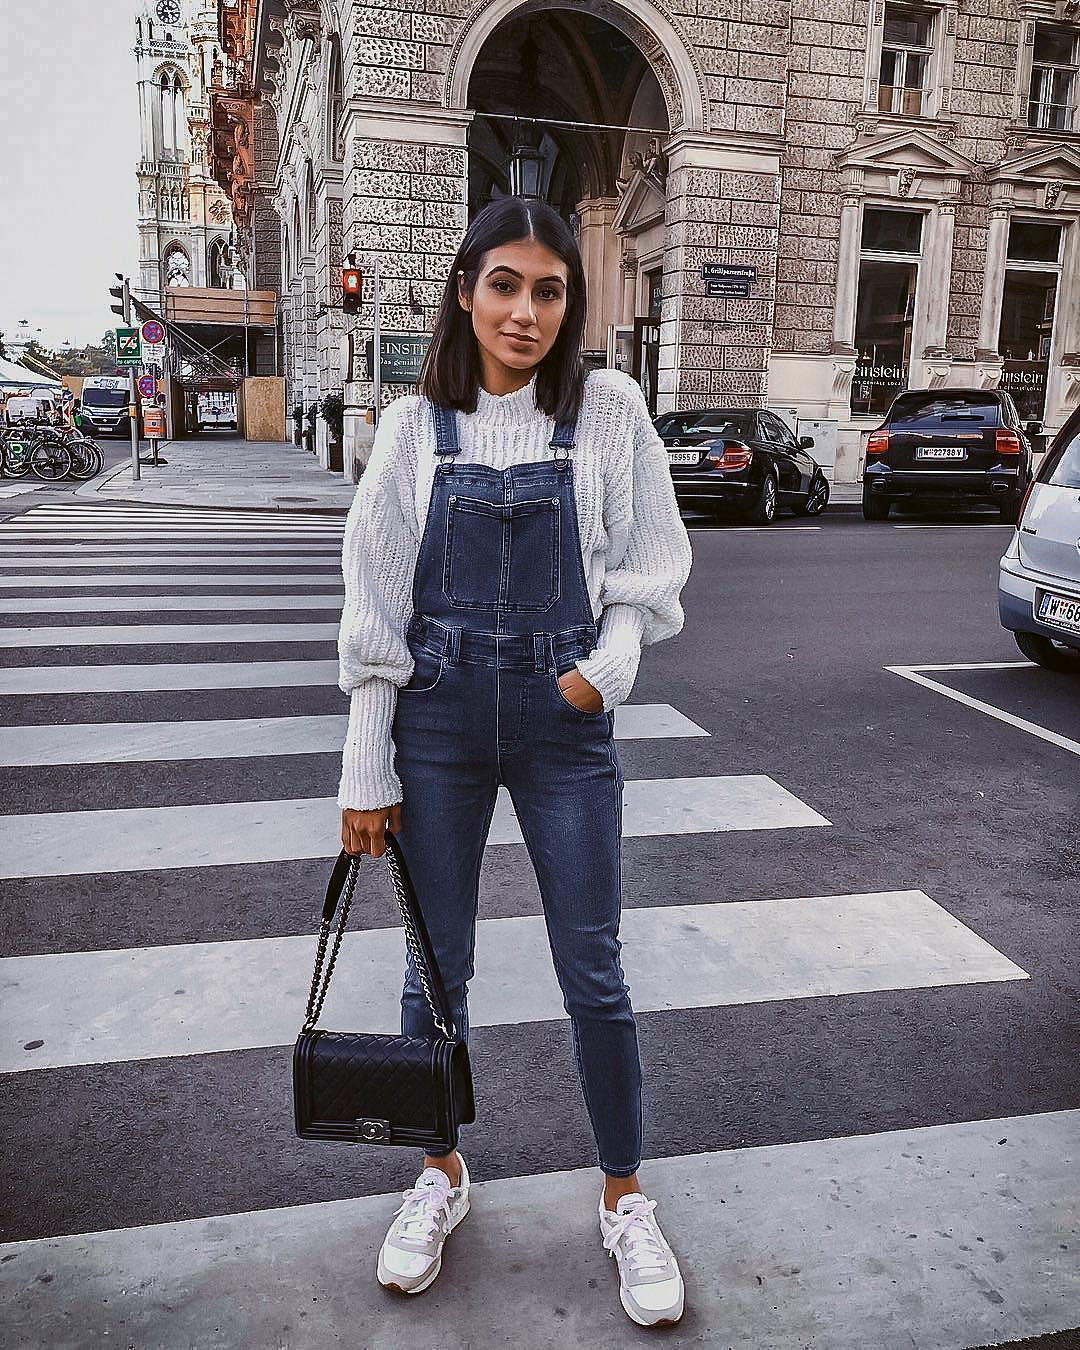 Casual athletic basics: denim overalls, white sweater and white sneakers 2021